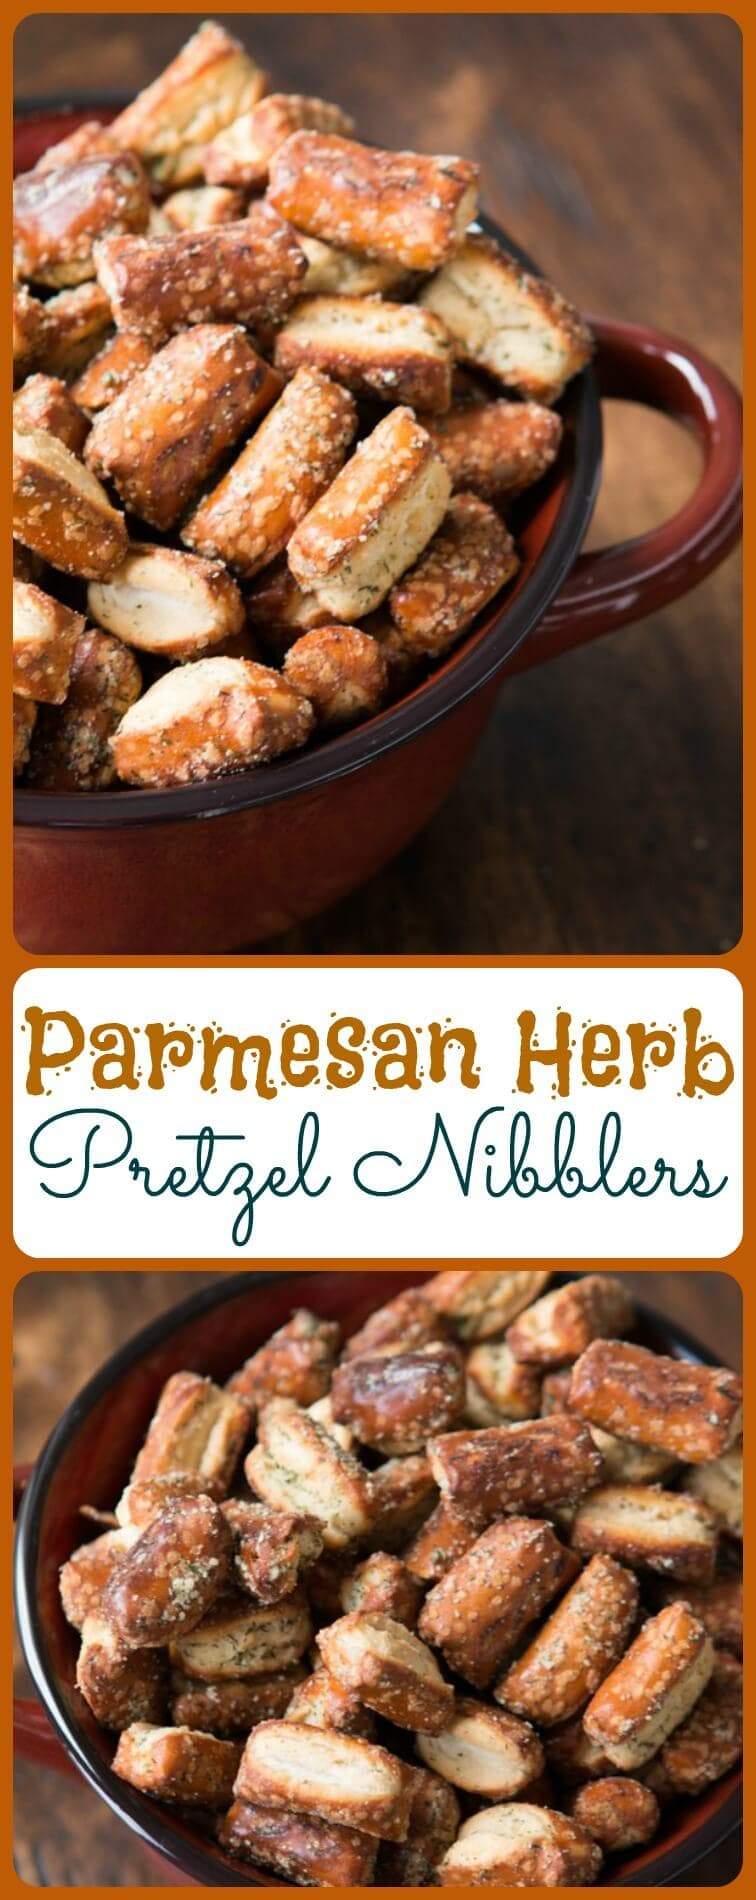 Parmesan Herb Pretzel Nibblers are more addicting than they should be. We can't keep the bowl full at parties and gatherings and soon you'll know why! ohsweetbasil.com